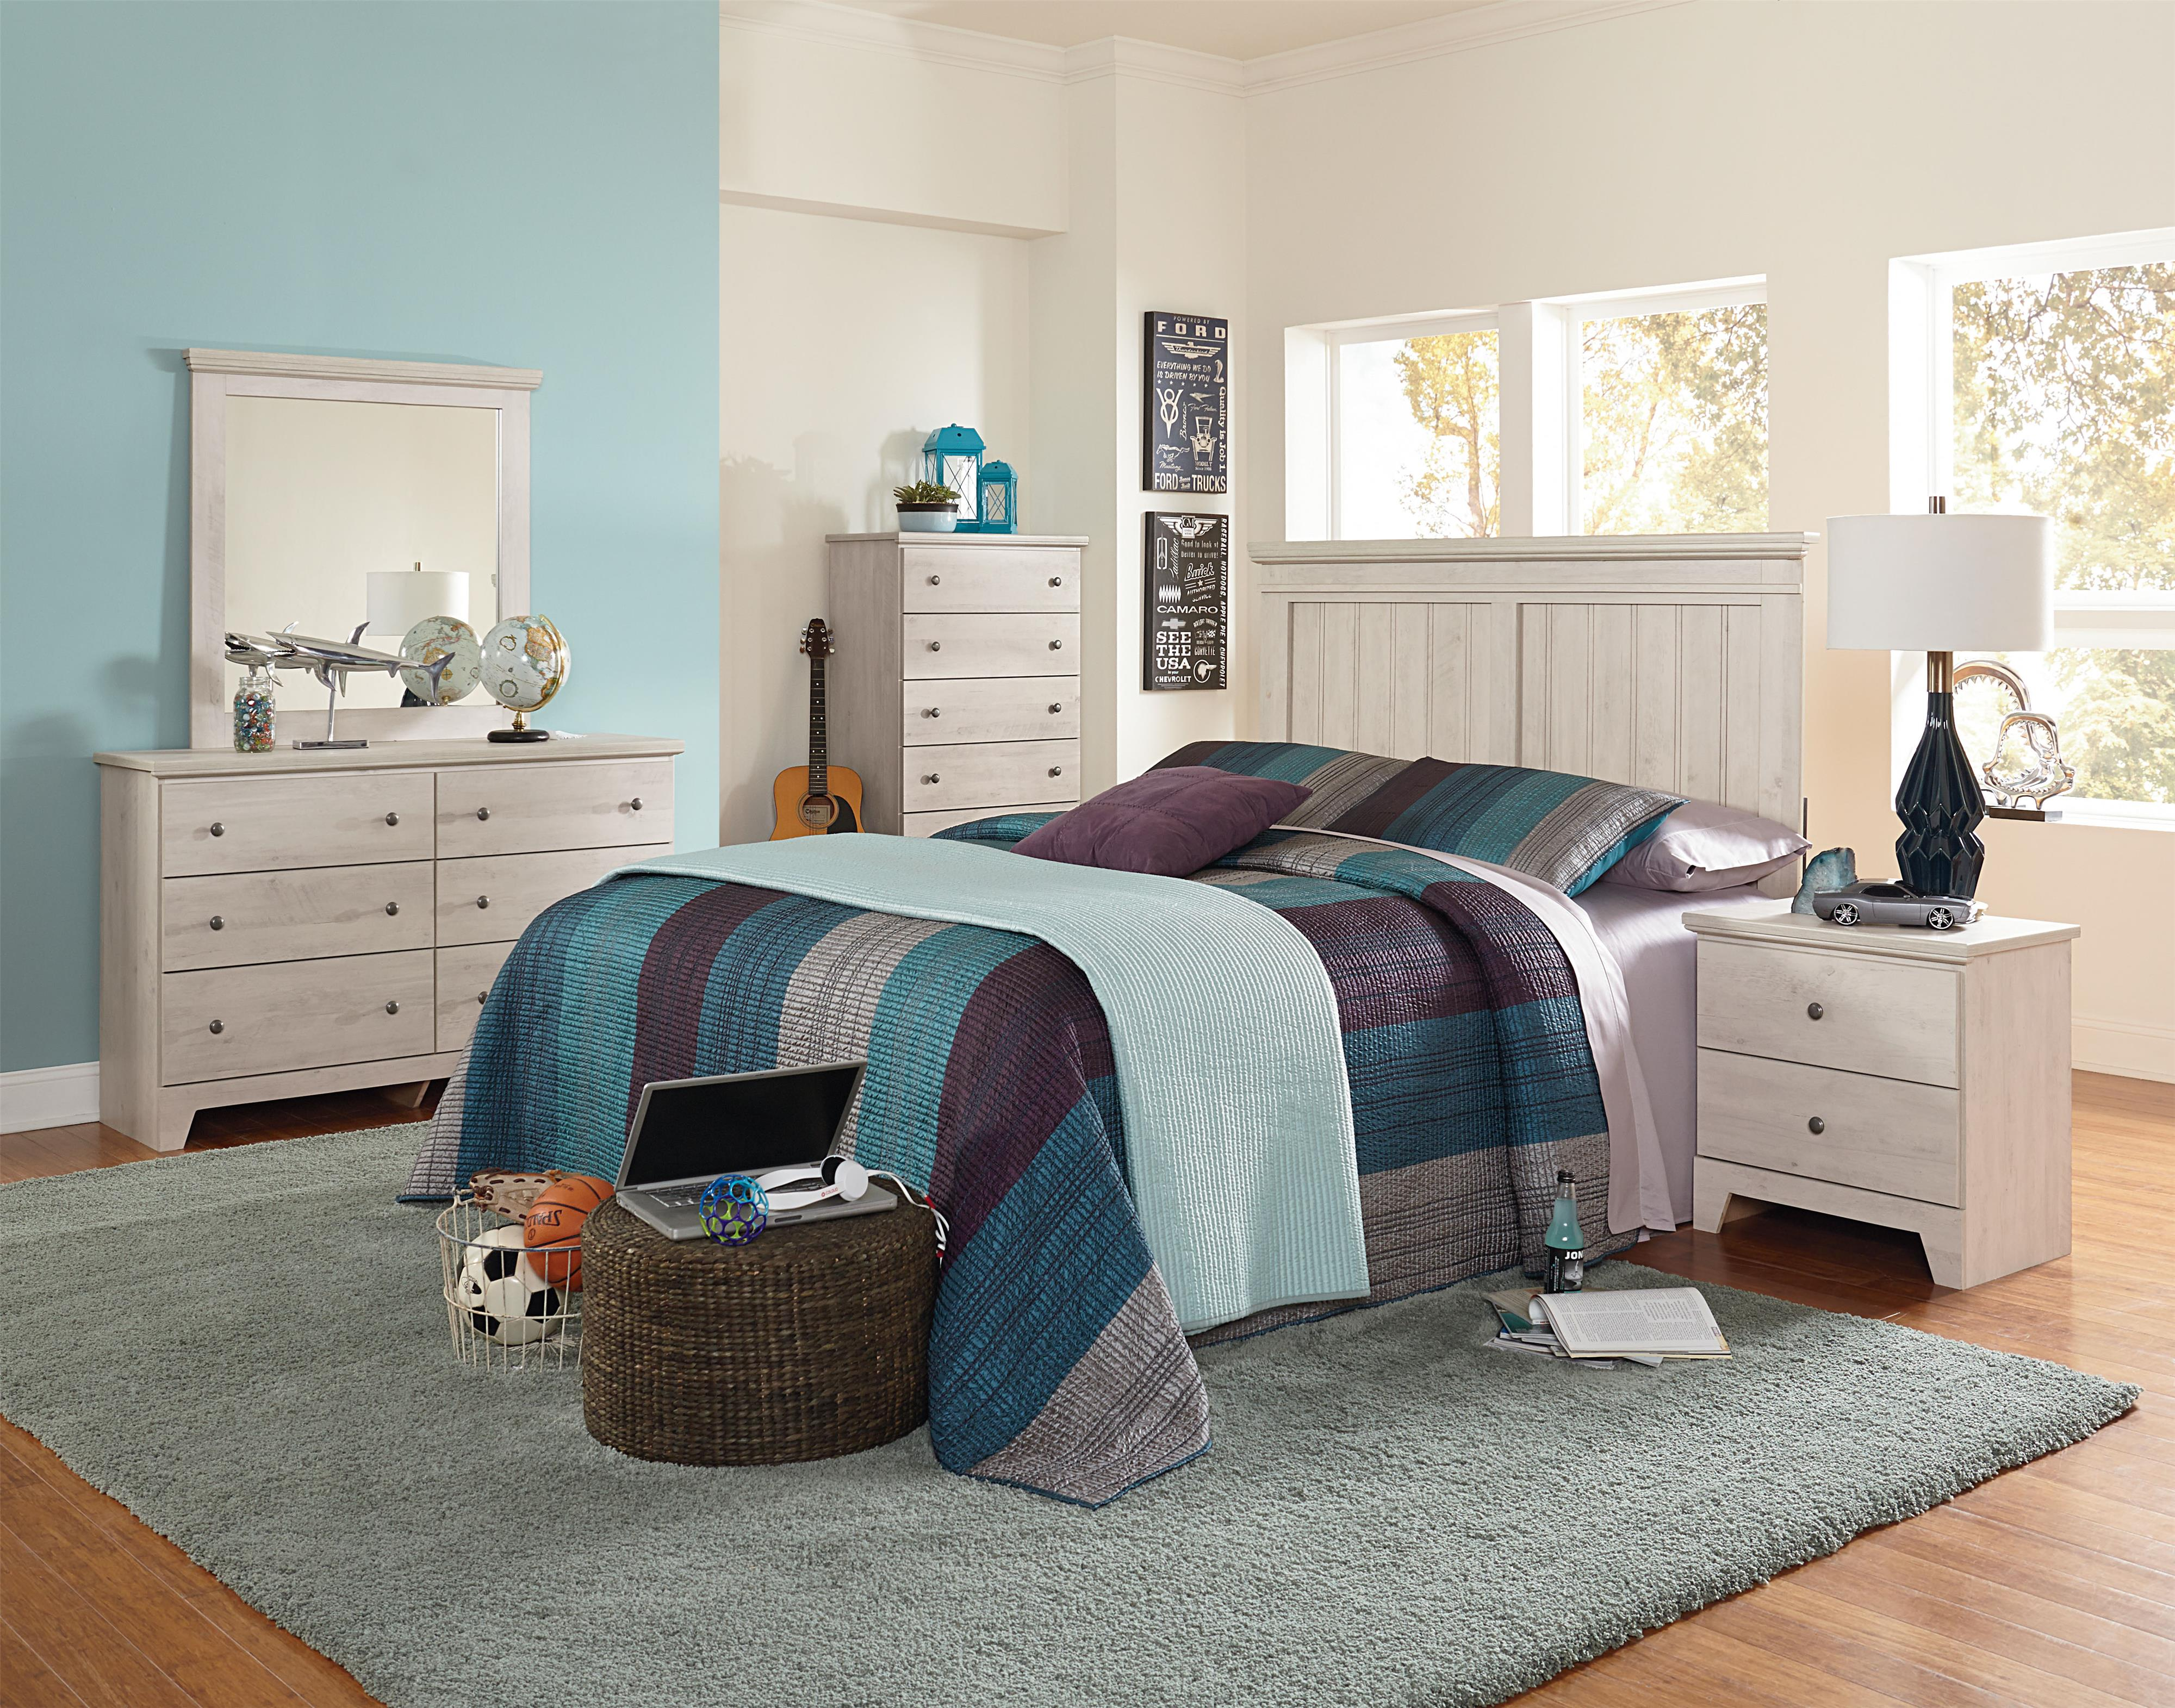 Standard Furniture Outland Lite King Bedroom Group - Item Number: 62950 K Bedroom Group 1